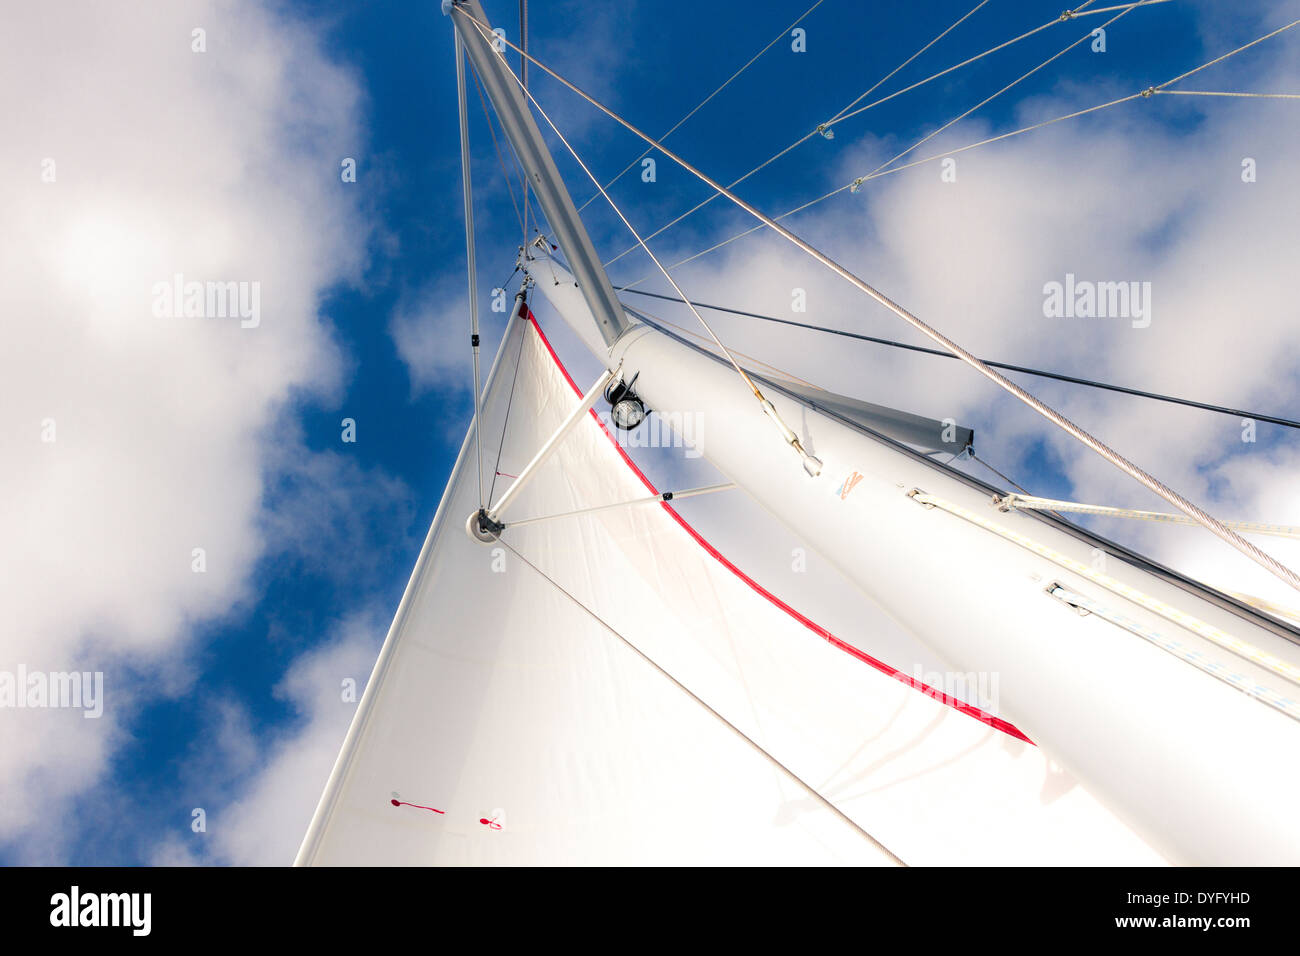 Looking up at white sail and mast of a sailboat against a blue sky with clouds - Stock Image